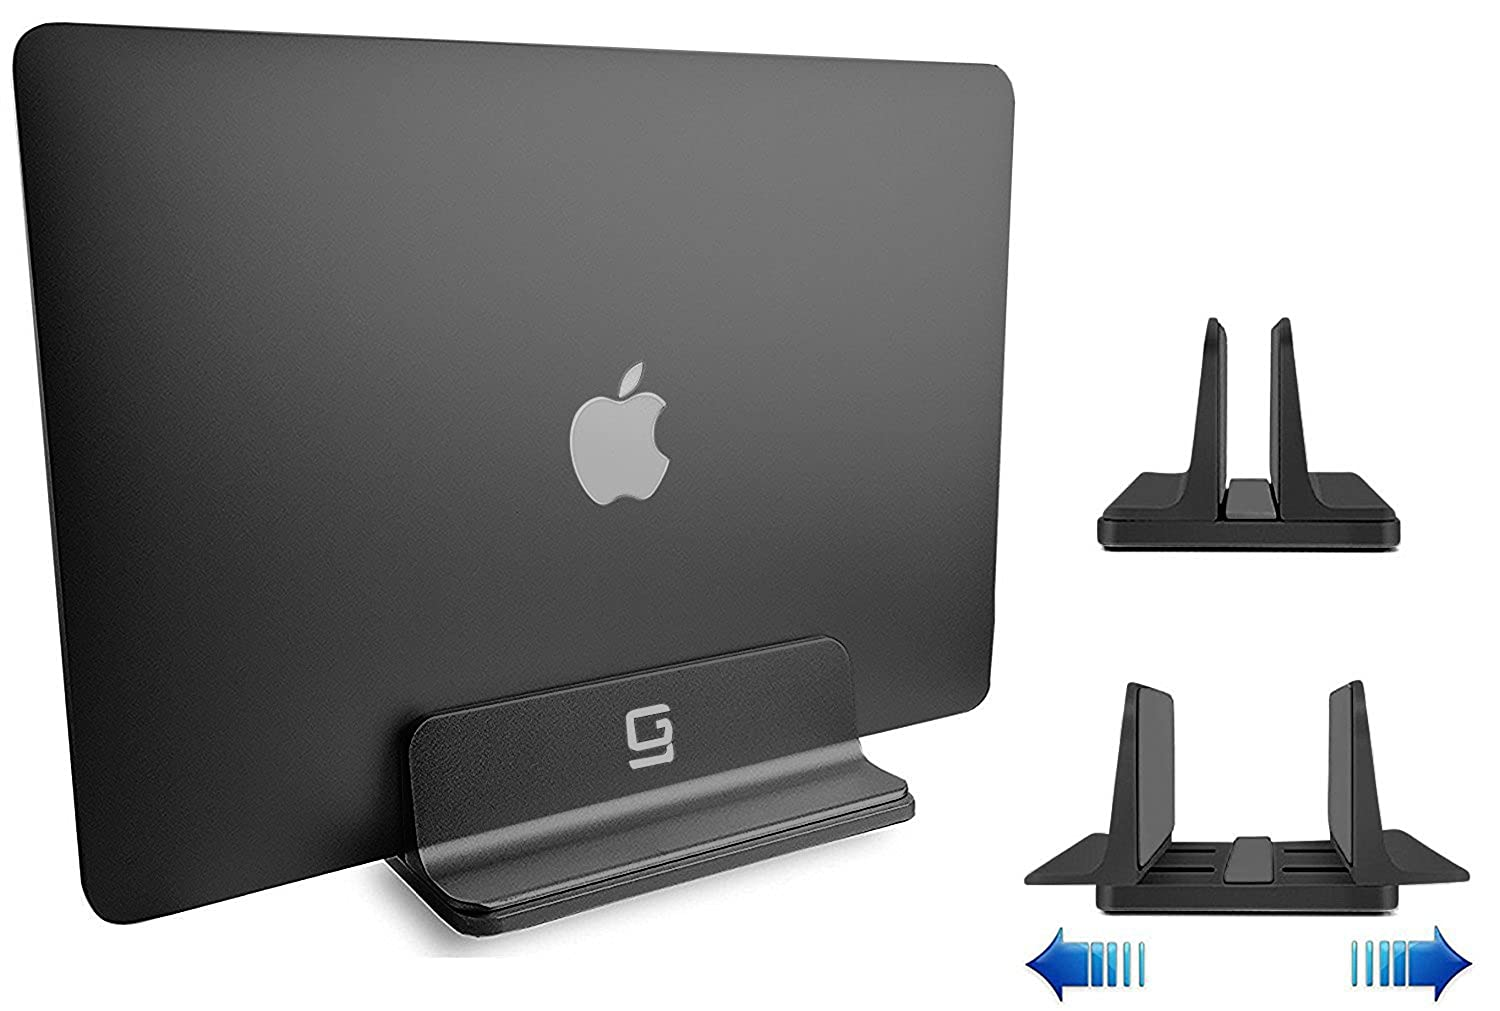 Adjustable Laptop Stand Dock | Compatible All MacBook Pro Air HP Dell Acer Lenovo Microsoft Surface Samsung Sony ASUS Laptops iPad | Vertical Modern Aluminum Custom Fit Desktop Space-Saving (Black)